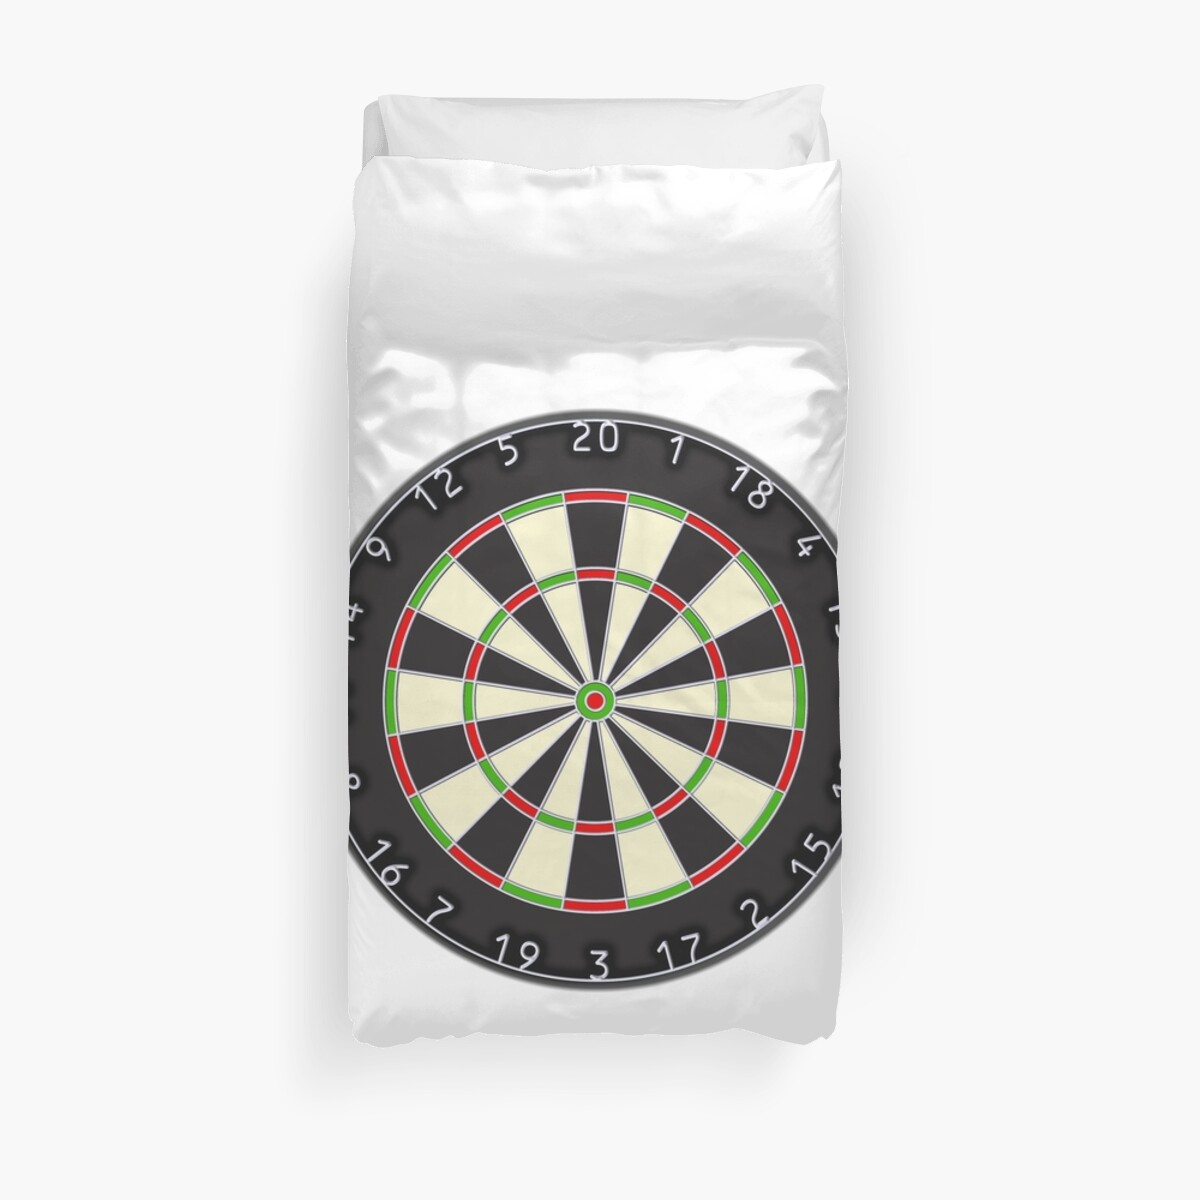 Dart Board Darts Arrows Target Bulls Eye Pub Game On White